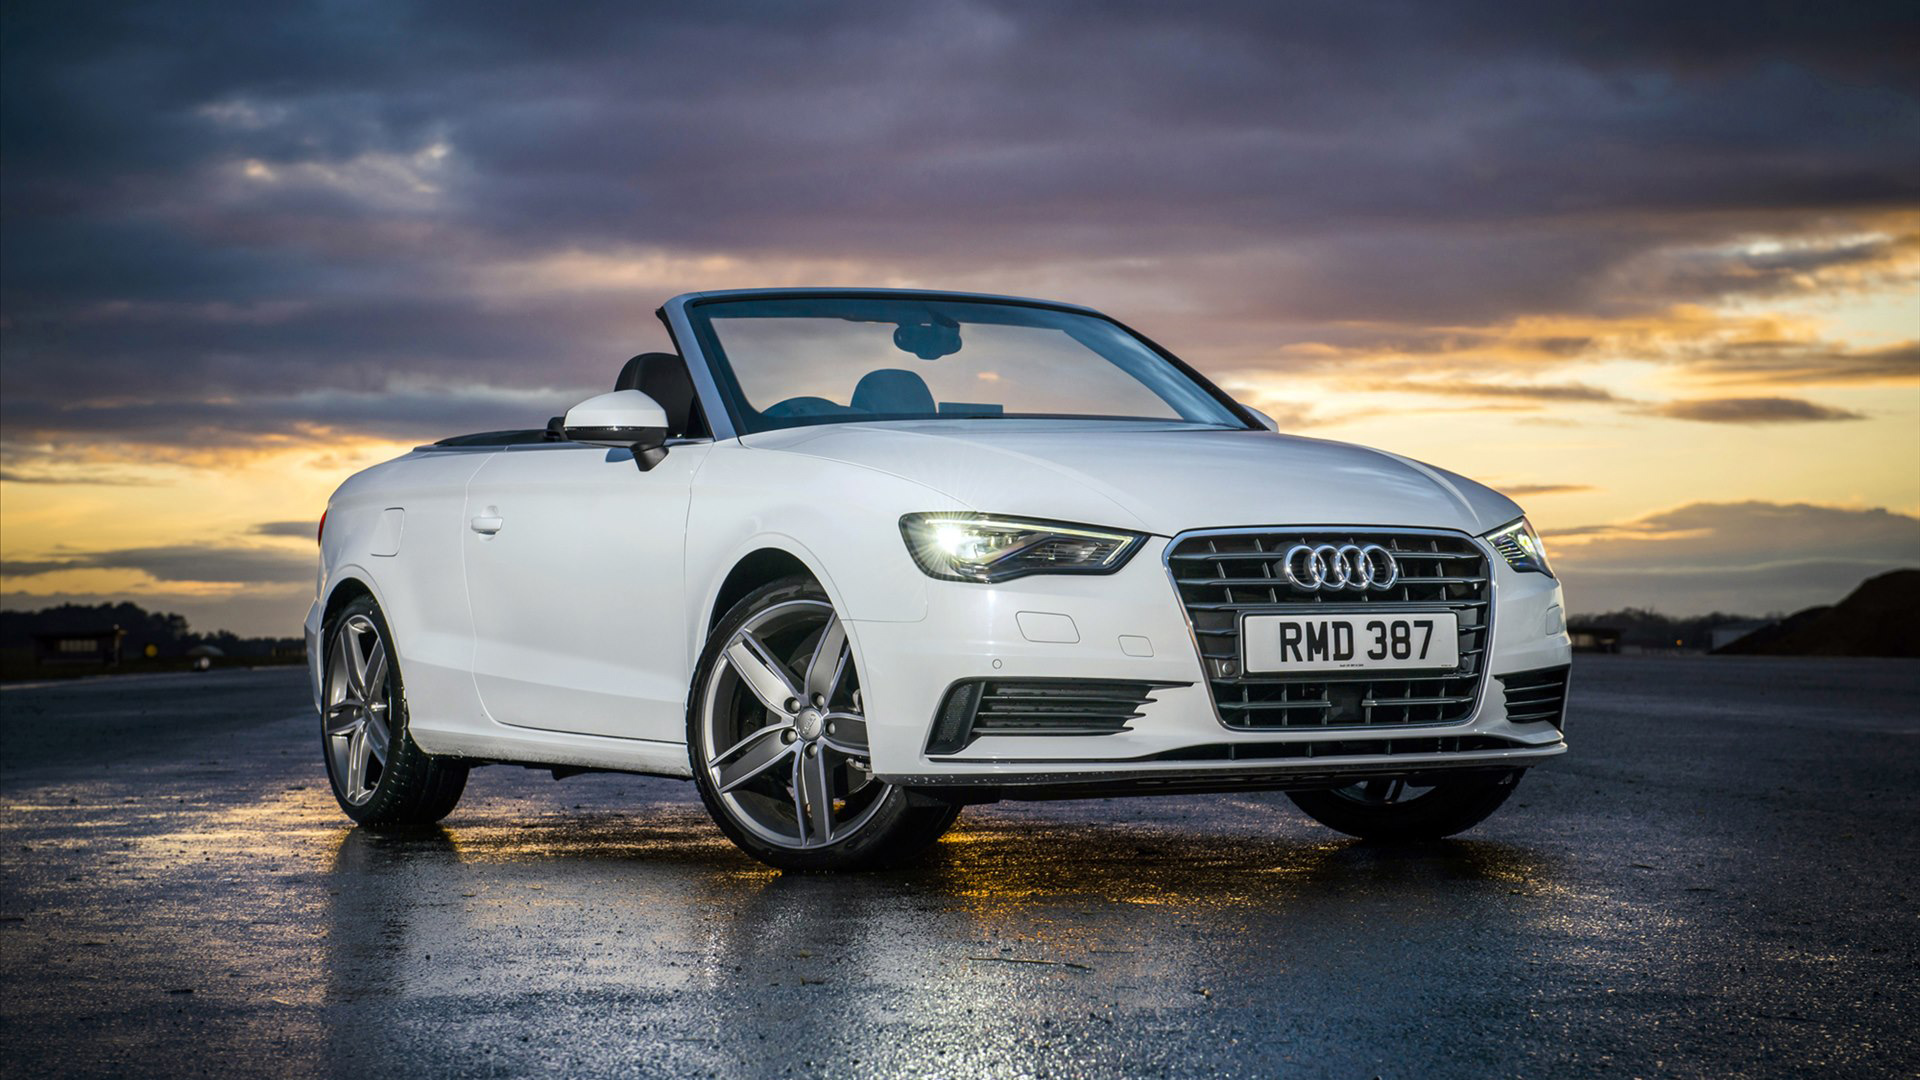 2015 audi a3 cabriolet sport wallpaper hd car wallpapers. Black Bedroom Furniture Sets. Home Design Ideas